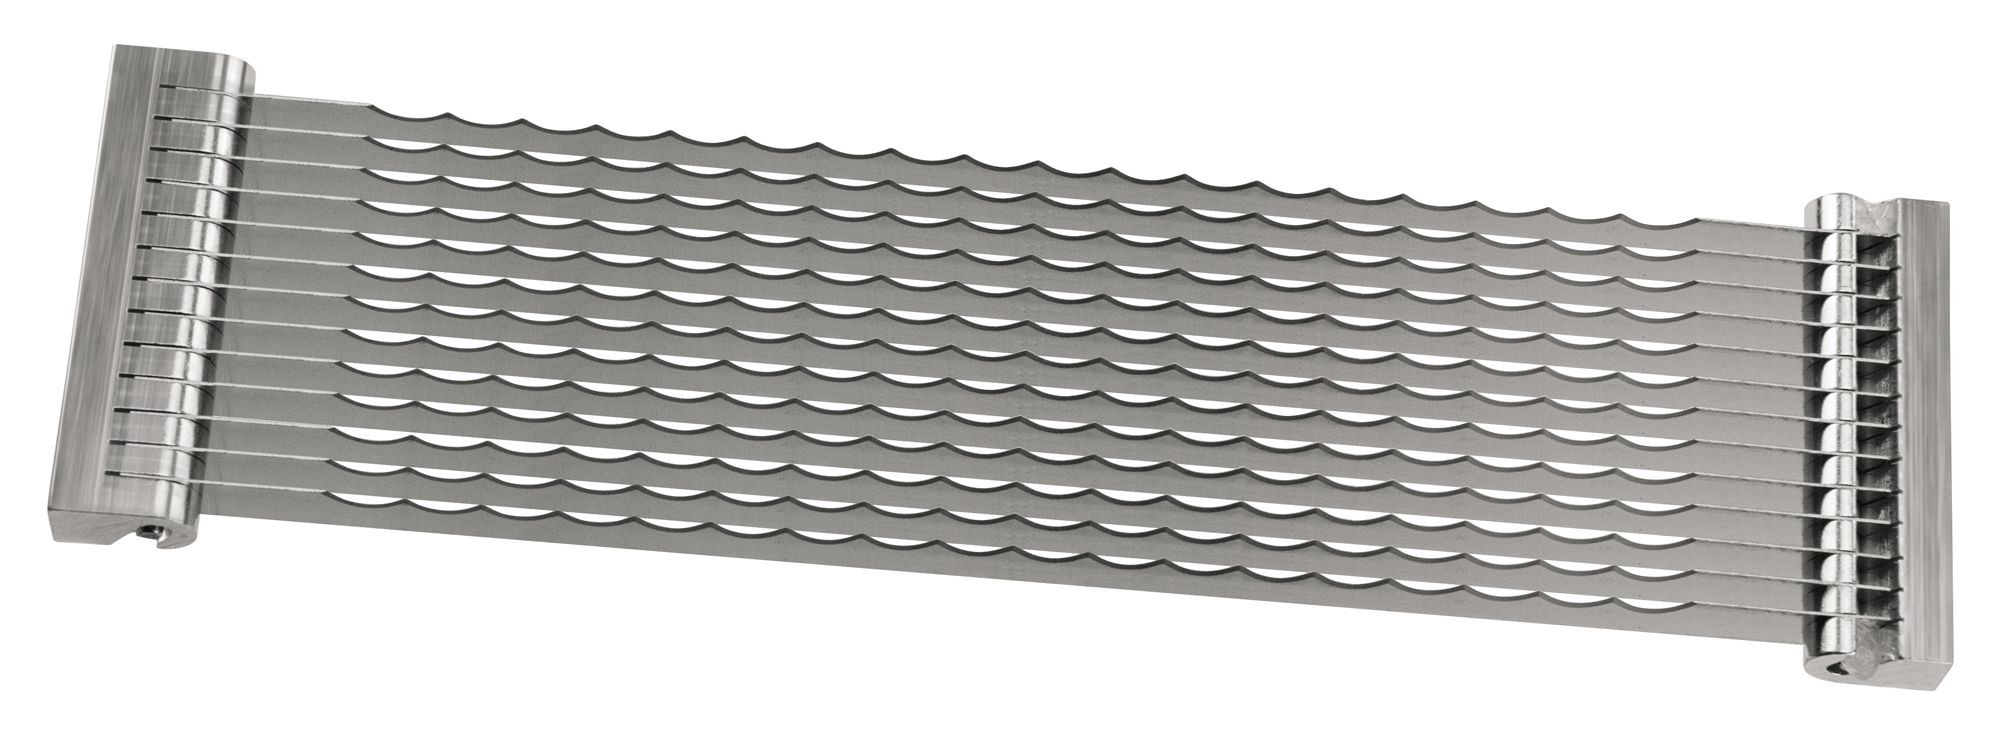 """Winco TTS-188S-B Kattex Replacement 3/16"""" Serrated Tomato Slicer Blade Assembly for TTS-2, TTS-3, TTS-188, and TTS-250"""